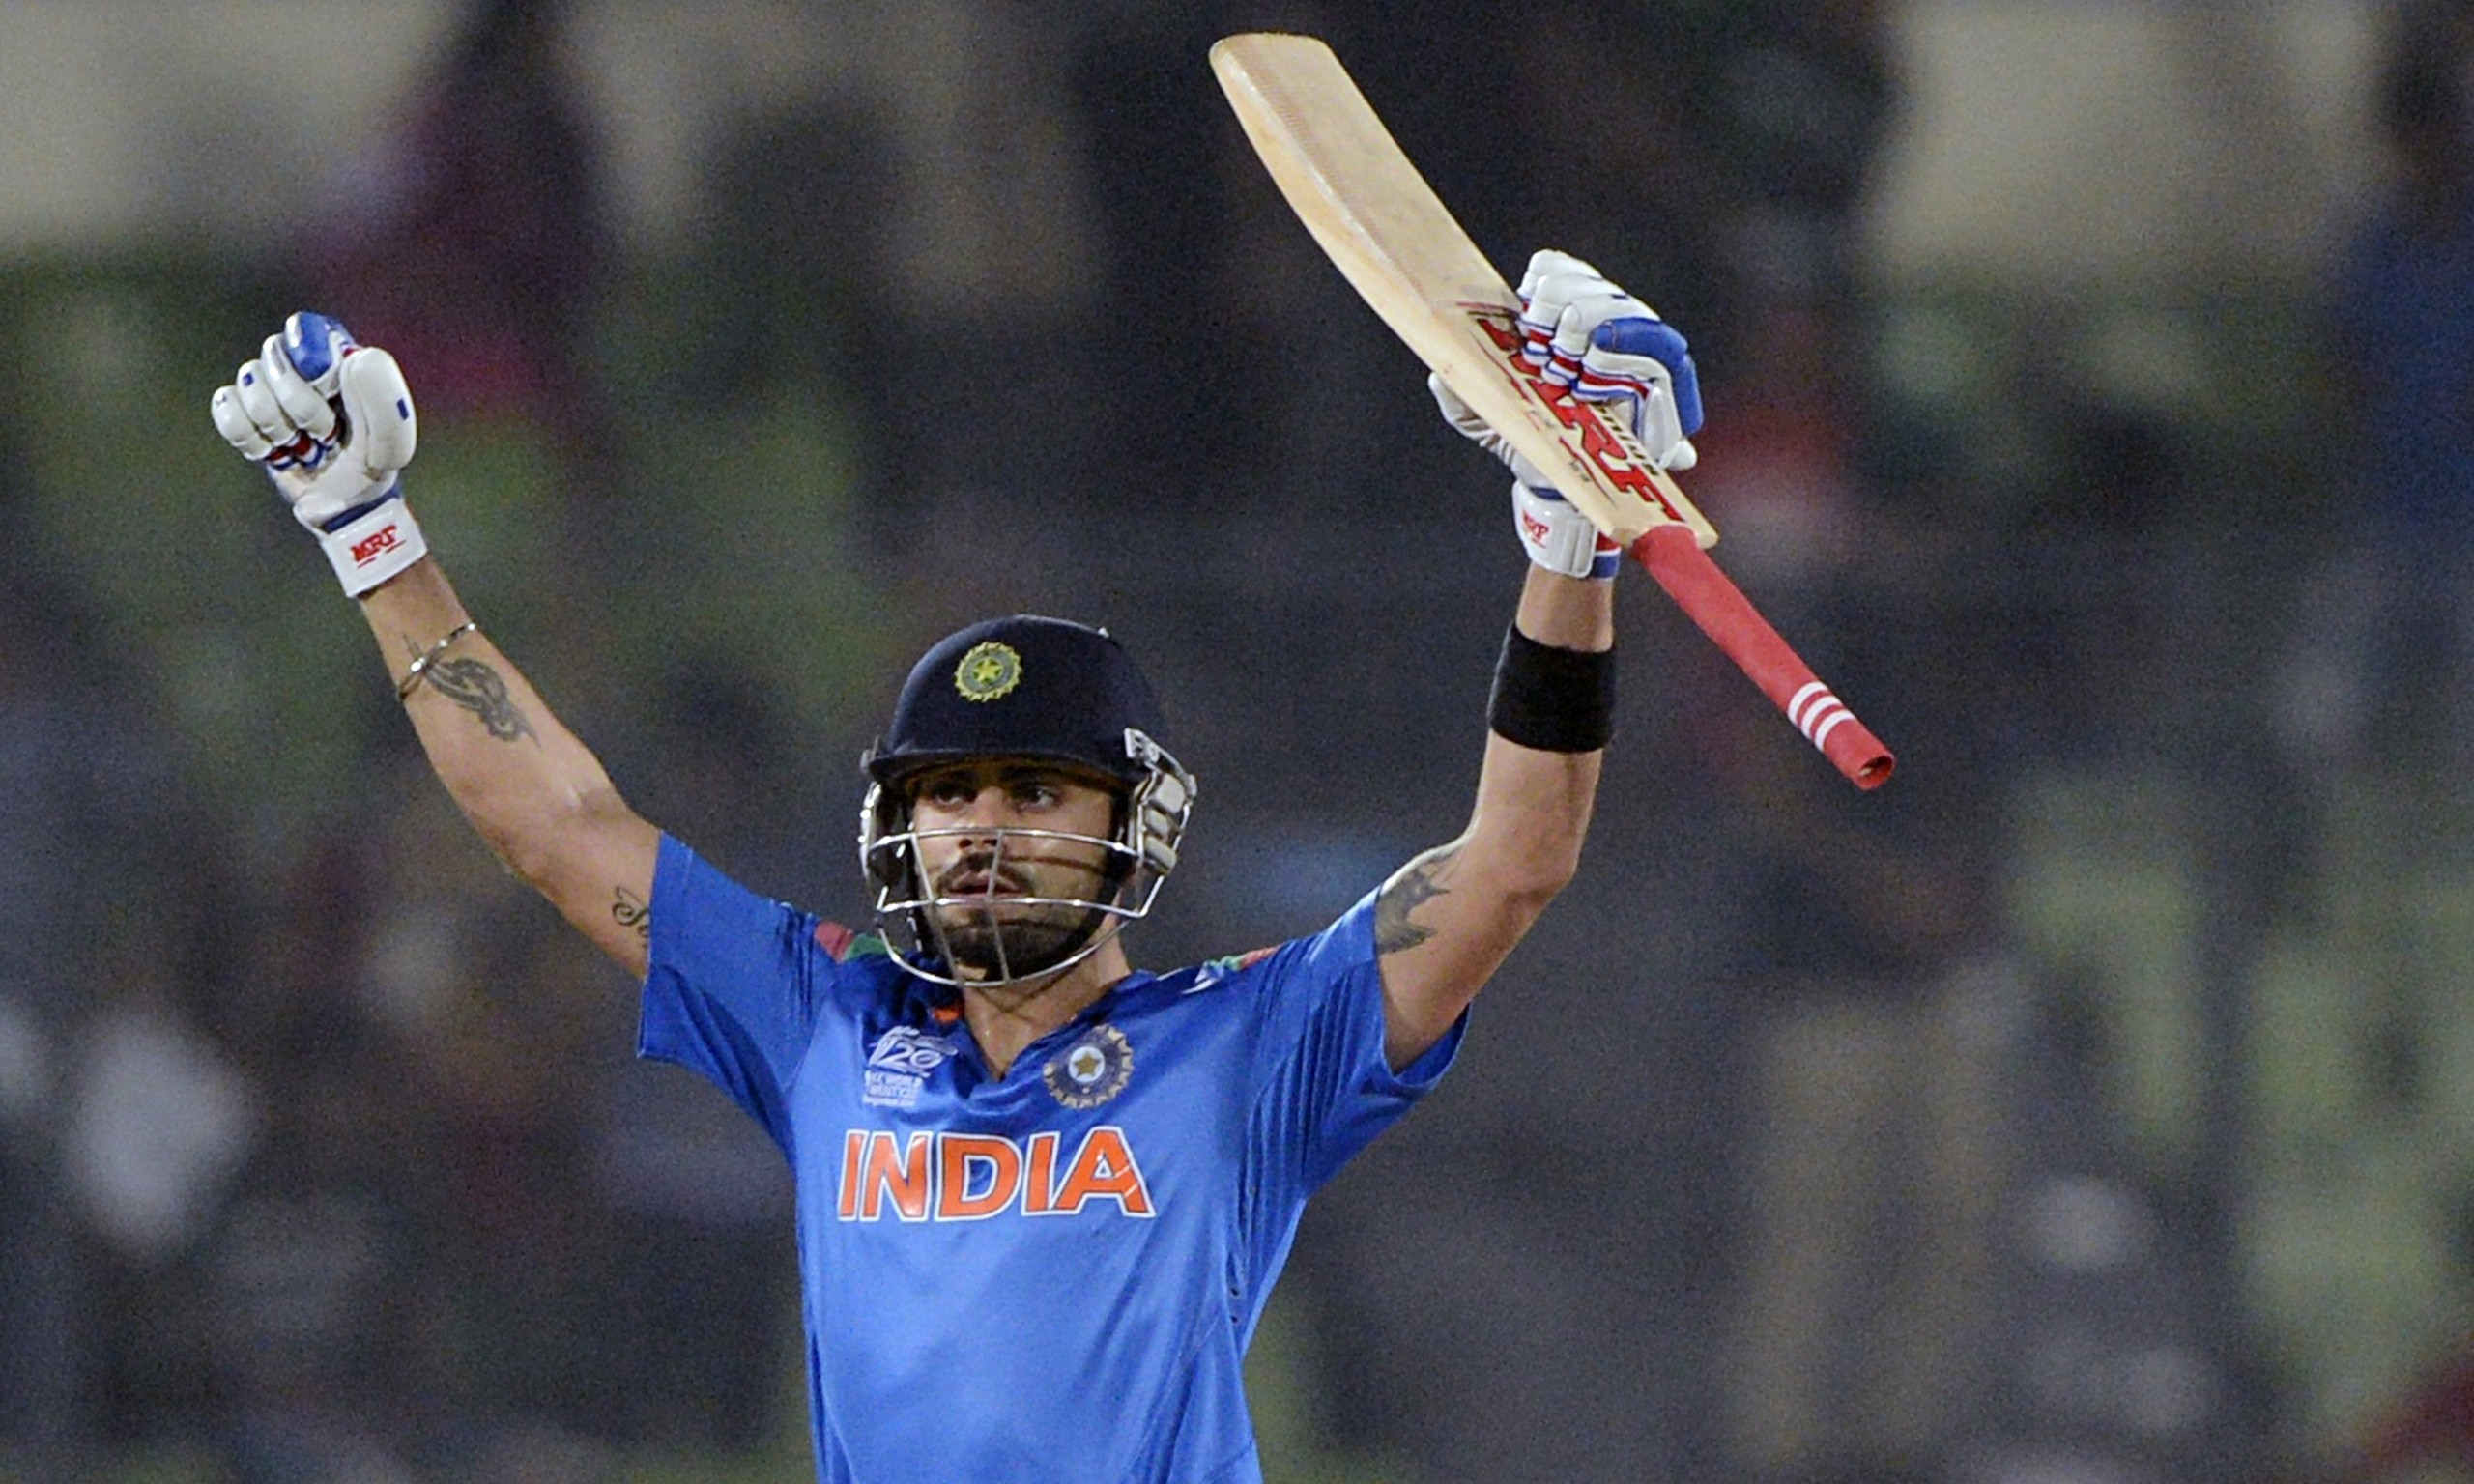 Indian Cricket Hd Wallpapers: Download HD Wallpaper For Free